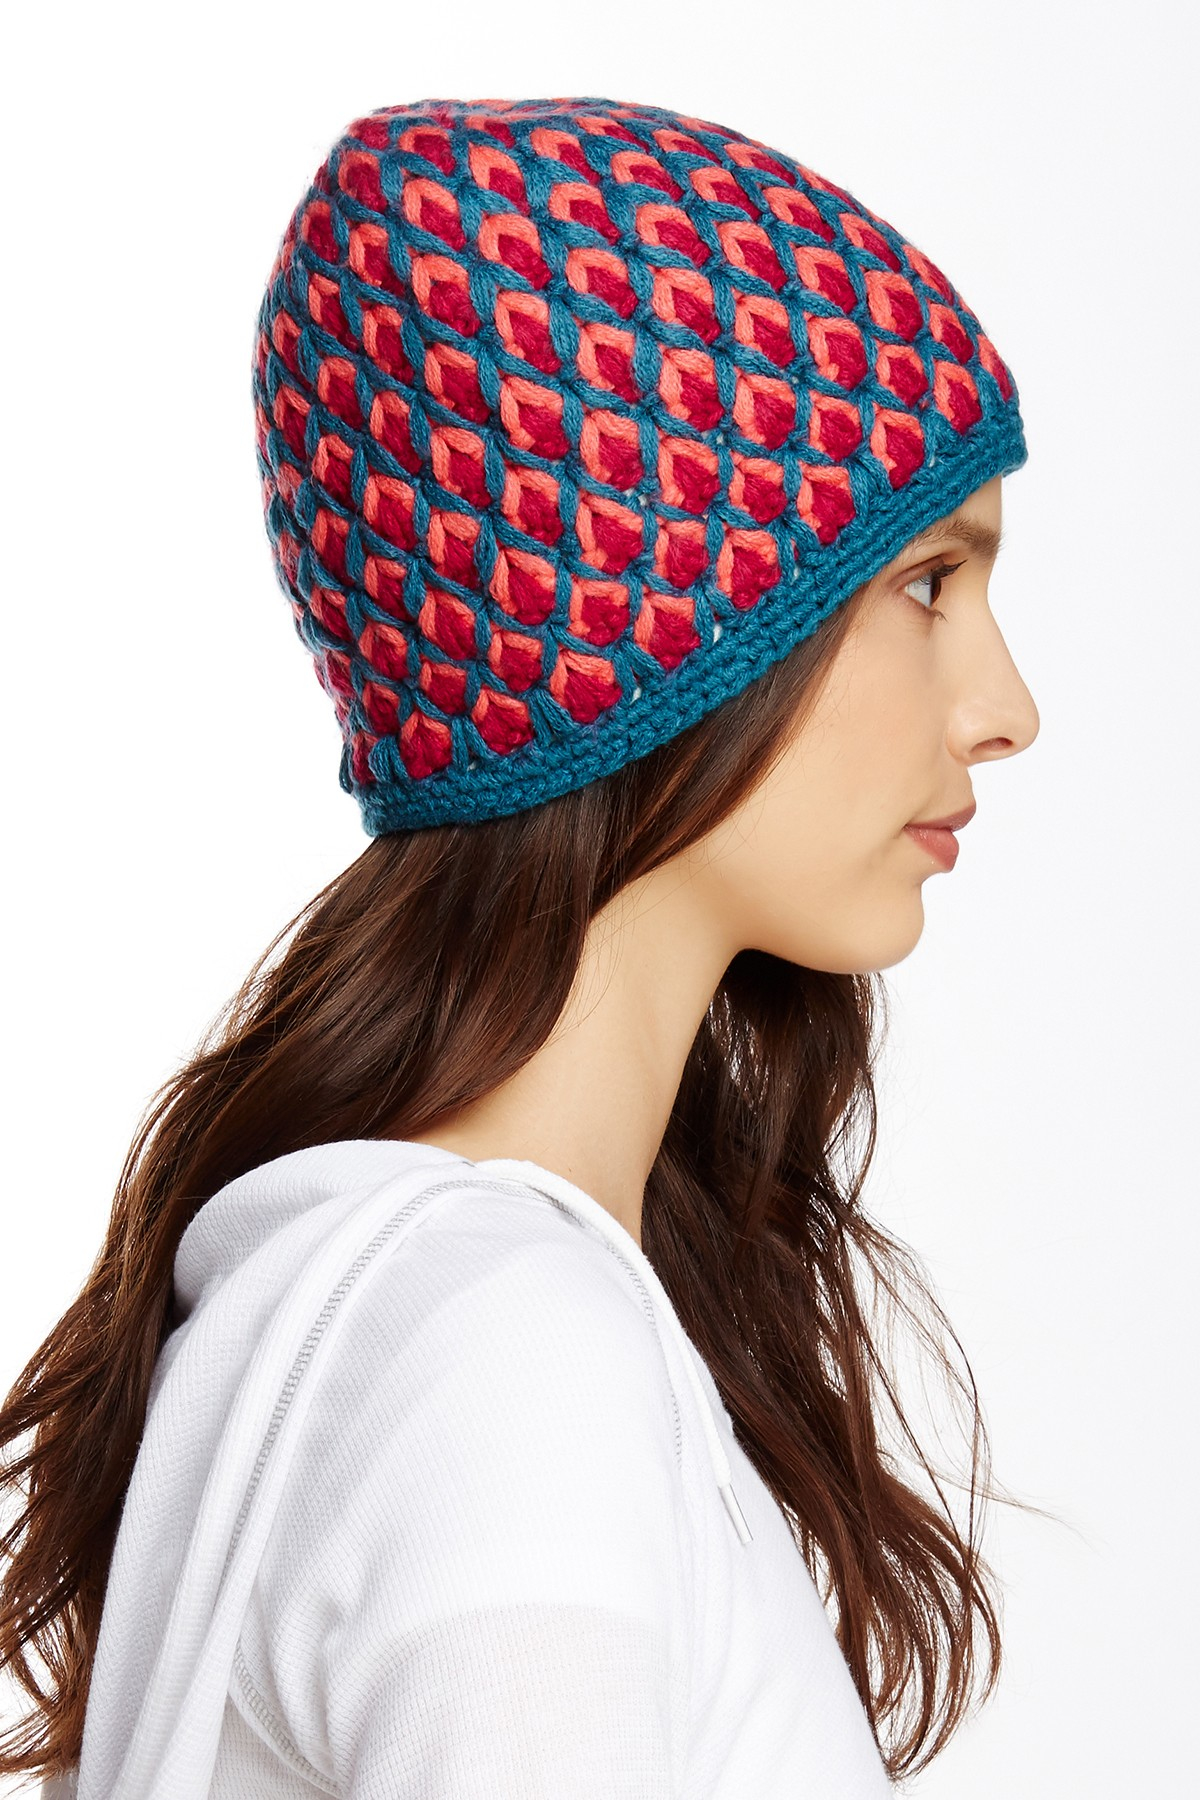 Lyst - The North Face Briar Fleece Lined Beanie 0124674bb47